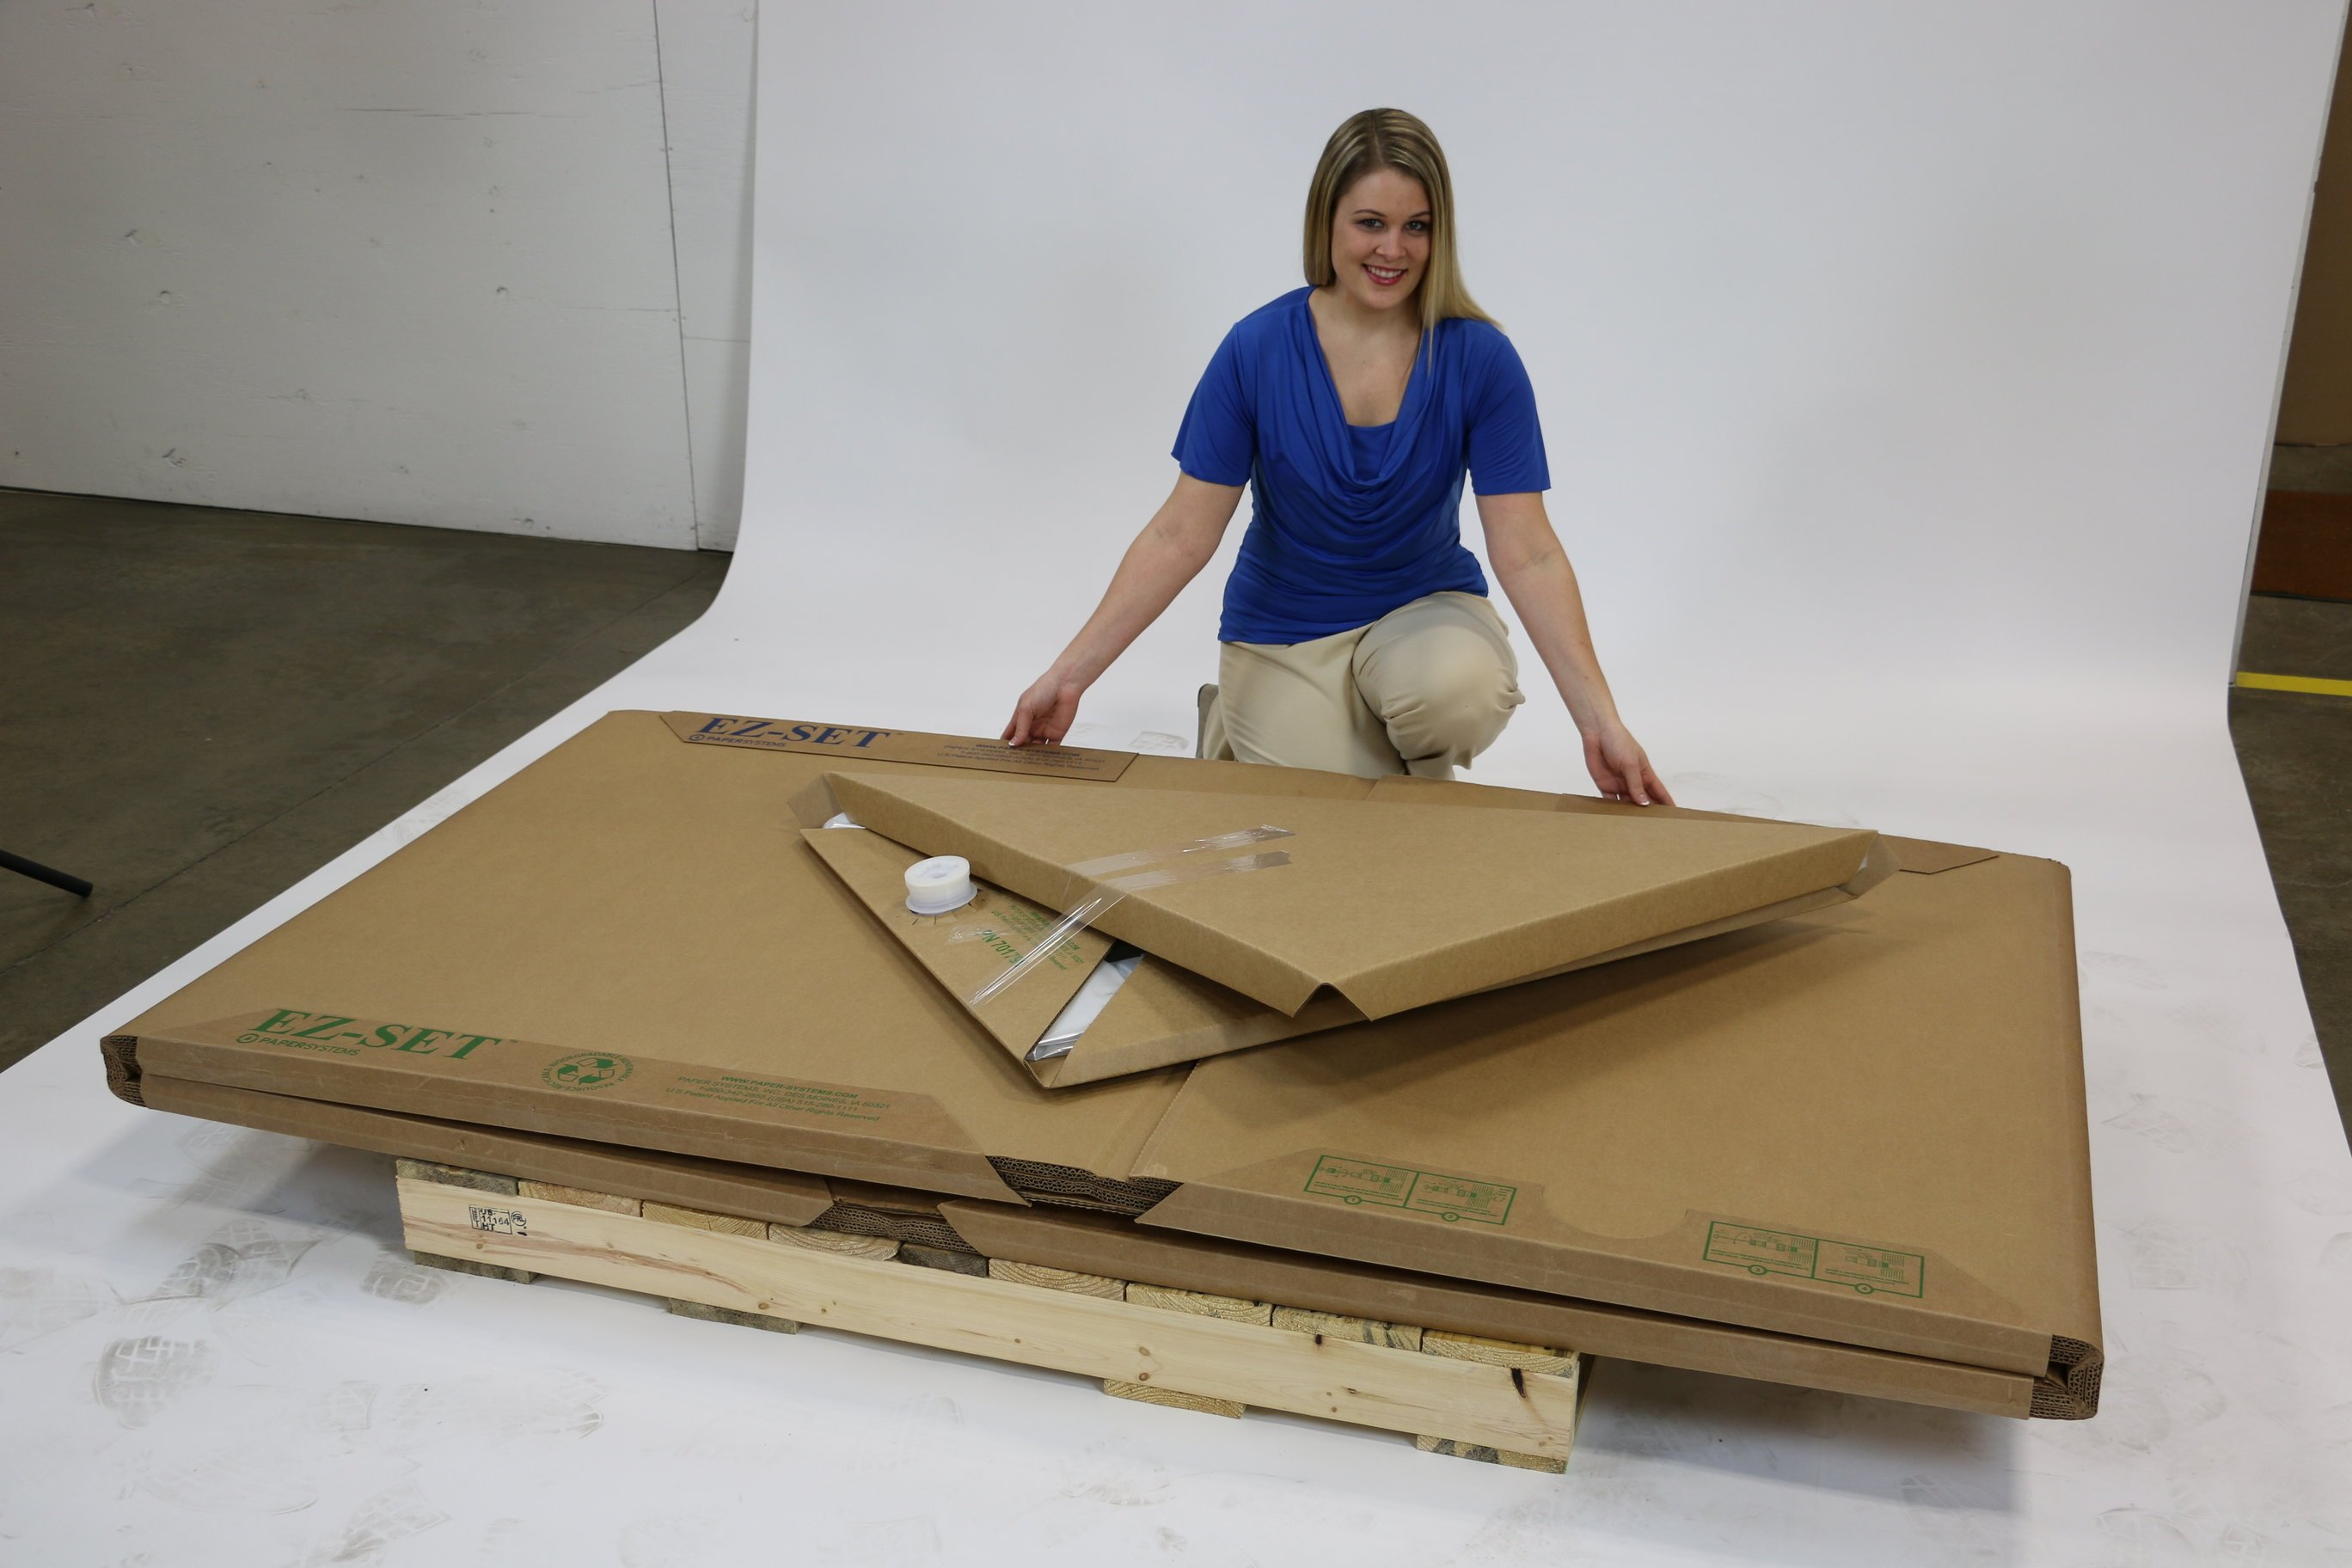 Disposable liquid totes arrive flat to save warehouse space